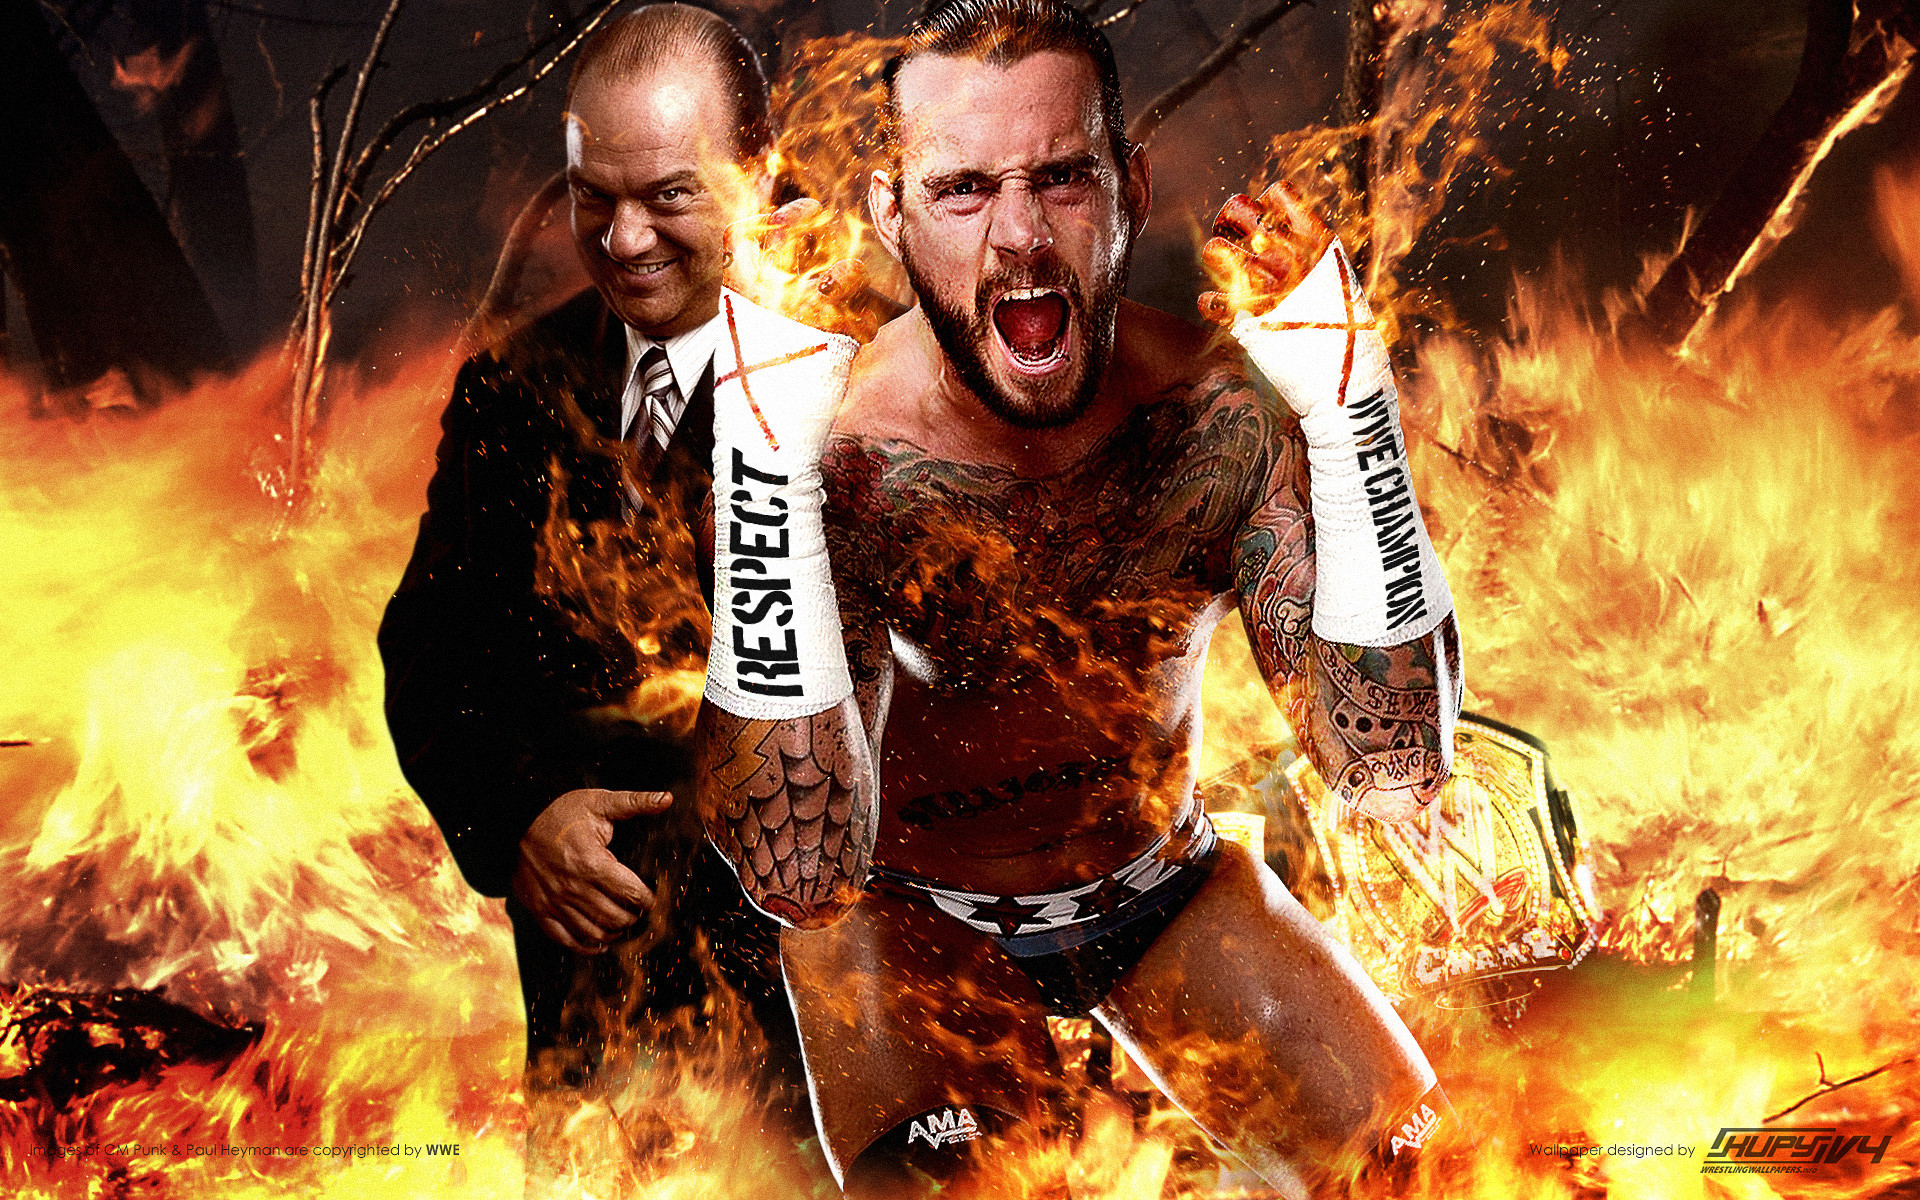 736×1309 px; Wwe Wallpapers   Wwe Full HD Quality Wallpapers